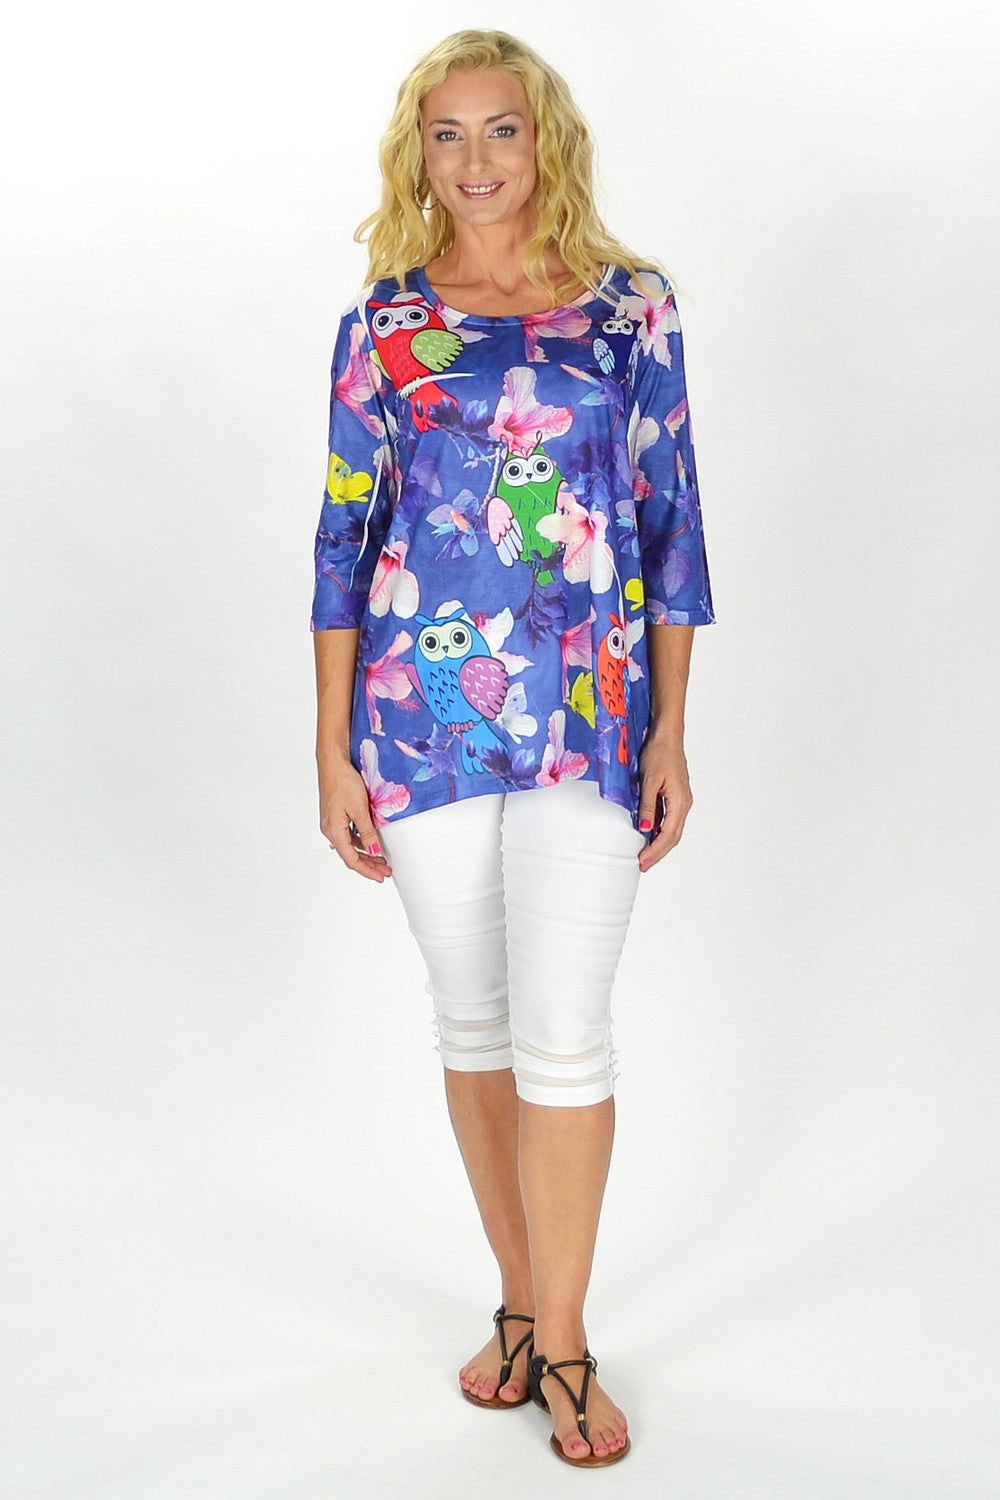 Flowers and Owl Tunic | I Love Tunics | Tunic Tops | Tunic | Tunic Dresses  | womens clothing online